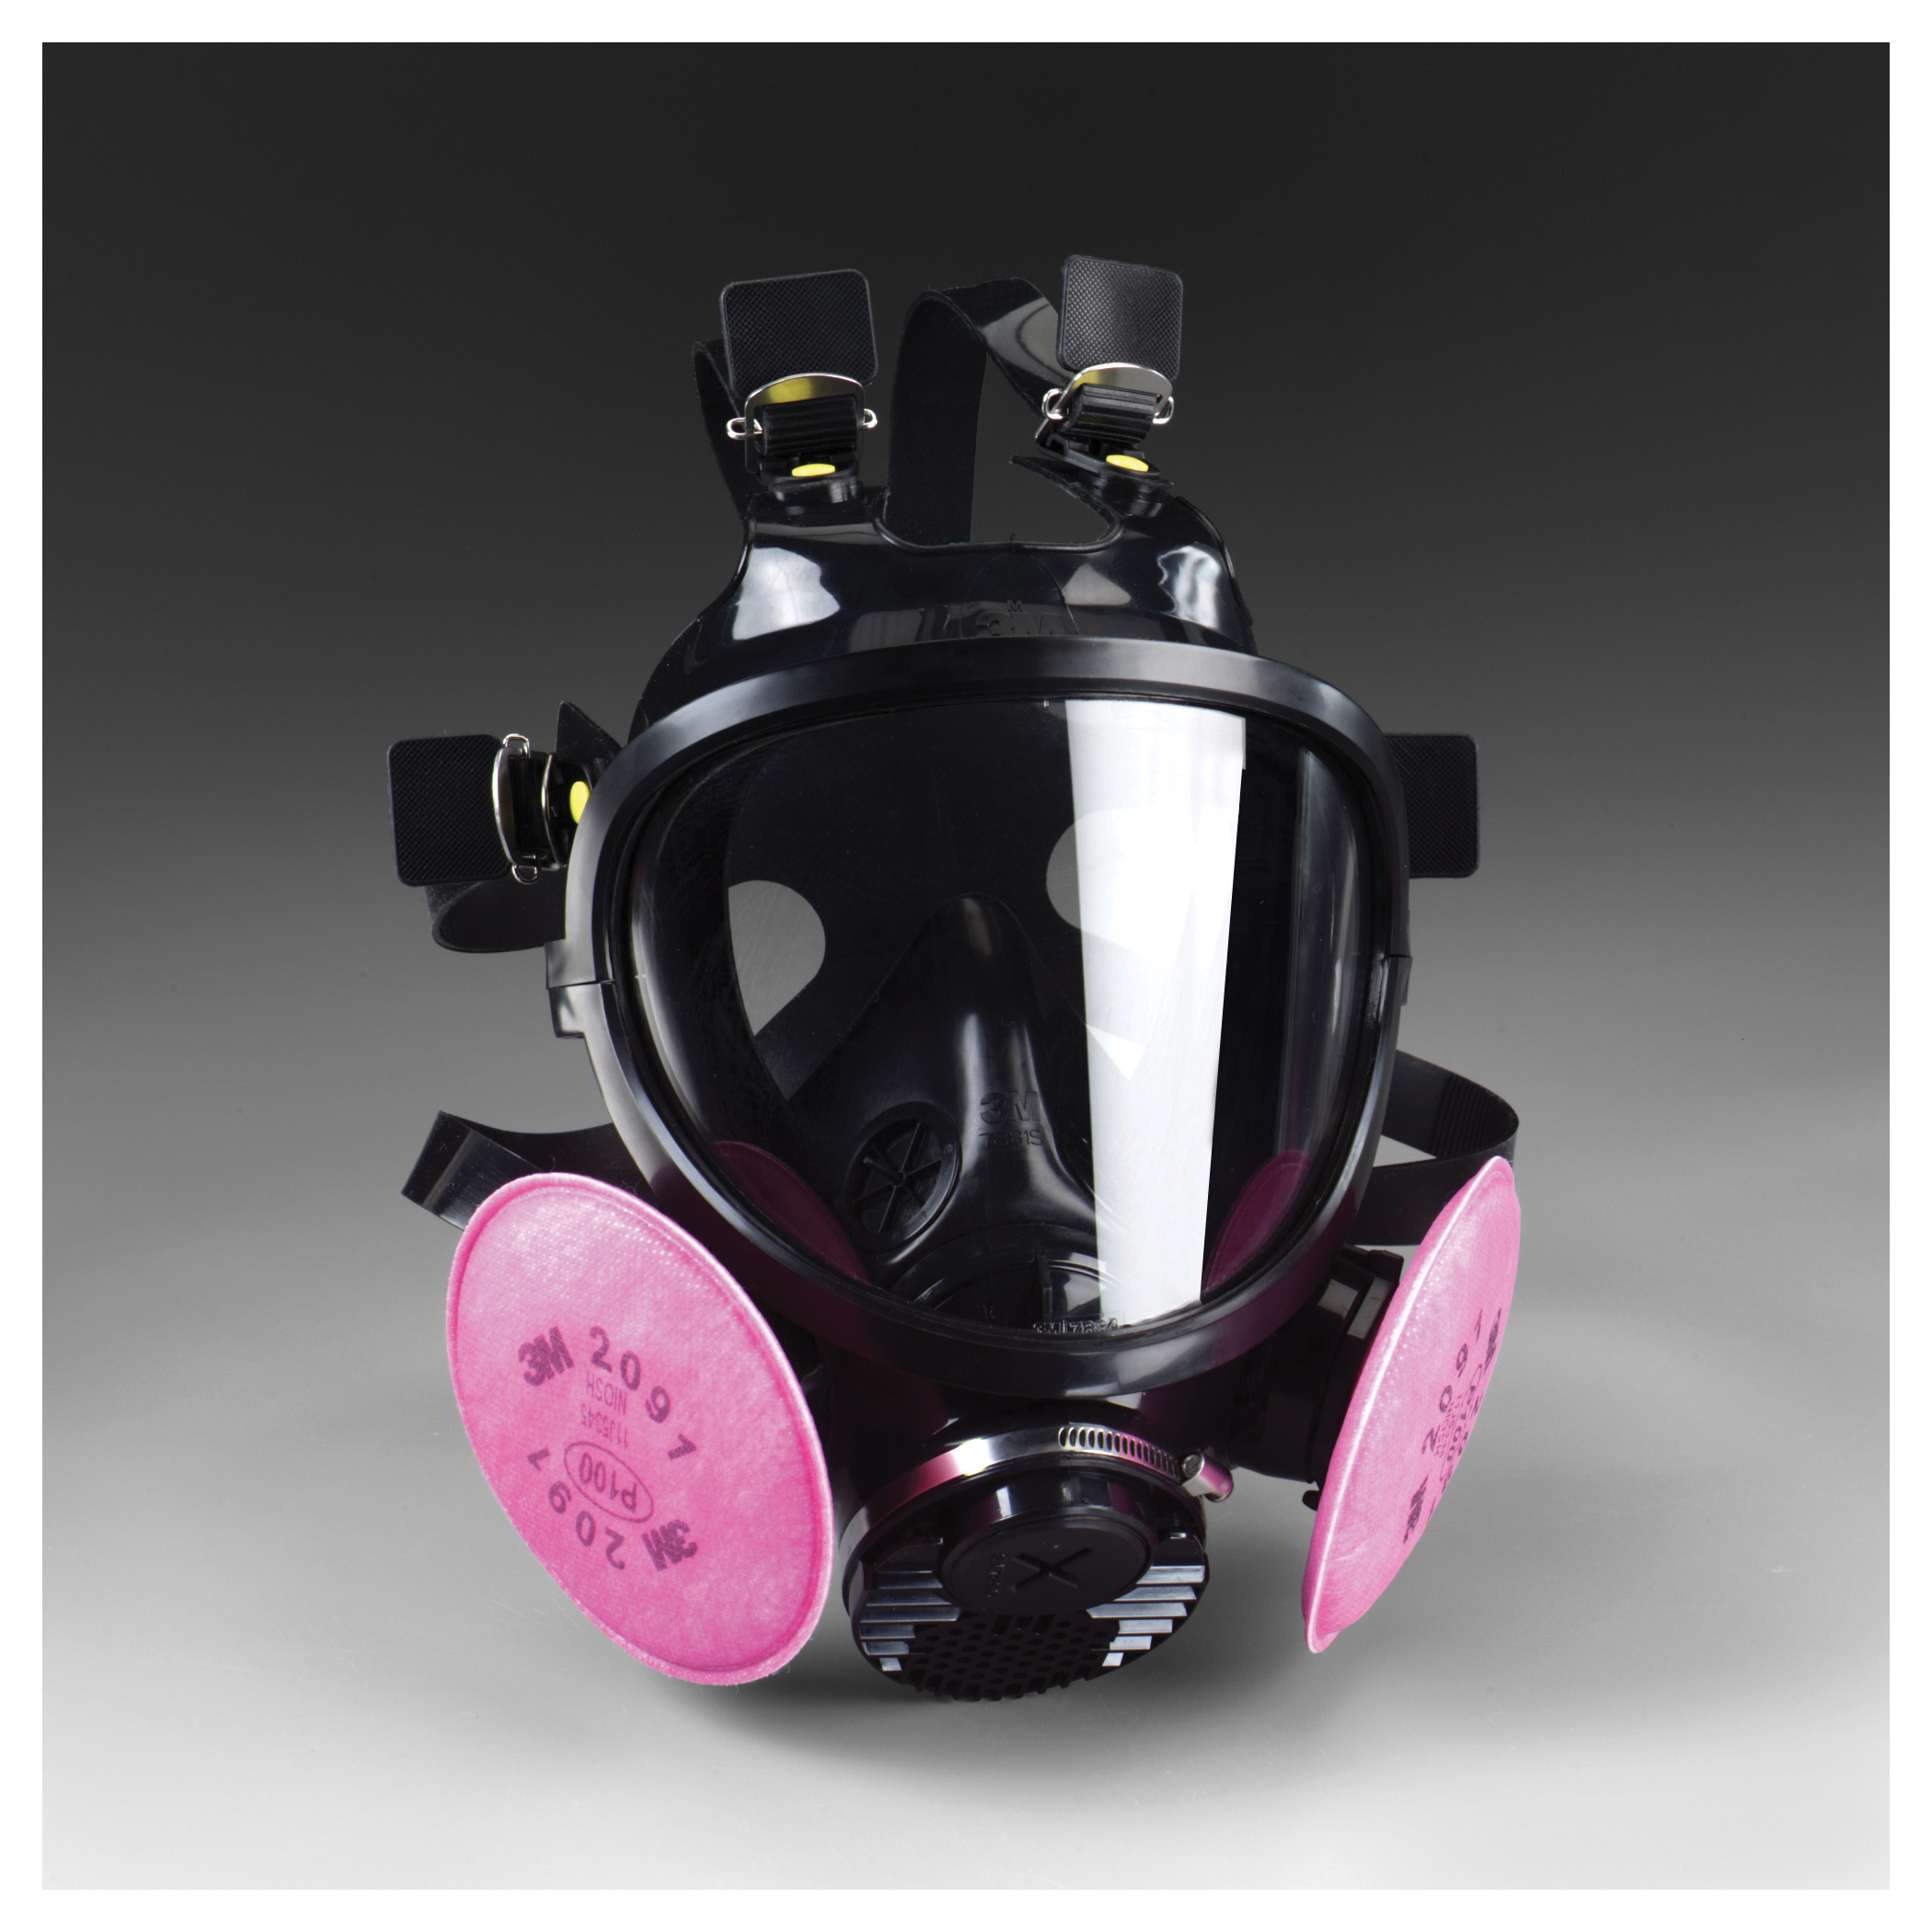 3M™ 051138-54257 V Series 7800 Reusable Full Face Respirator, S, 6-Point Suspension, Bayonet/DIN Connection, Resists: Multi-Contaminants